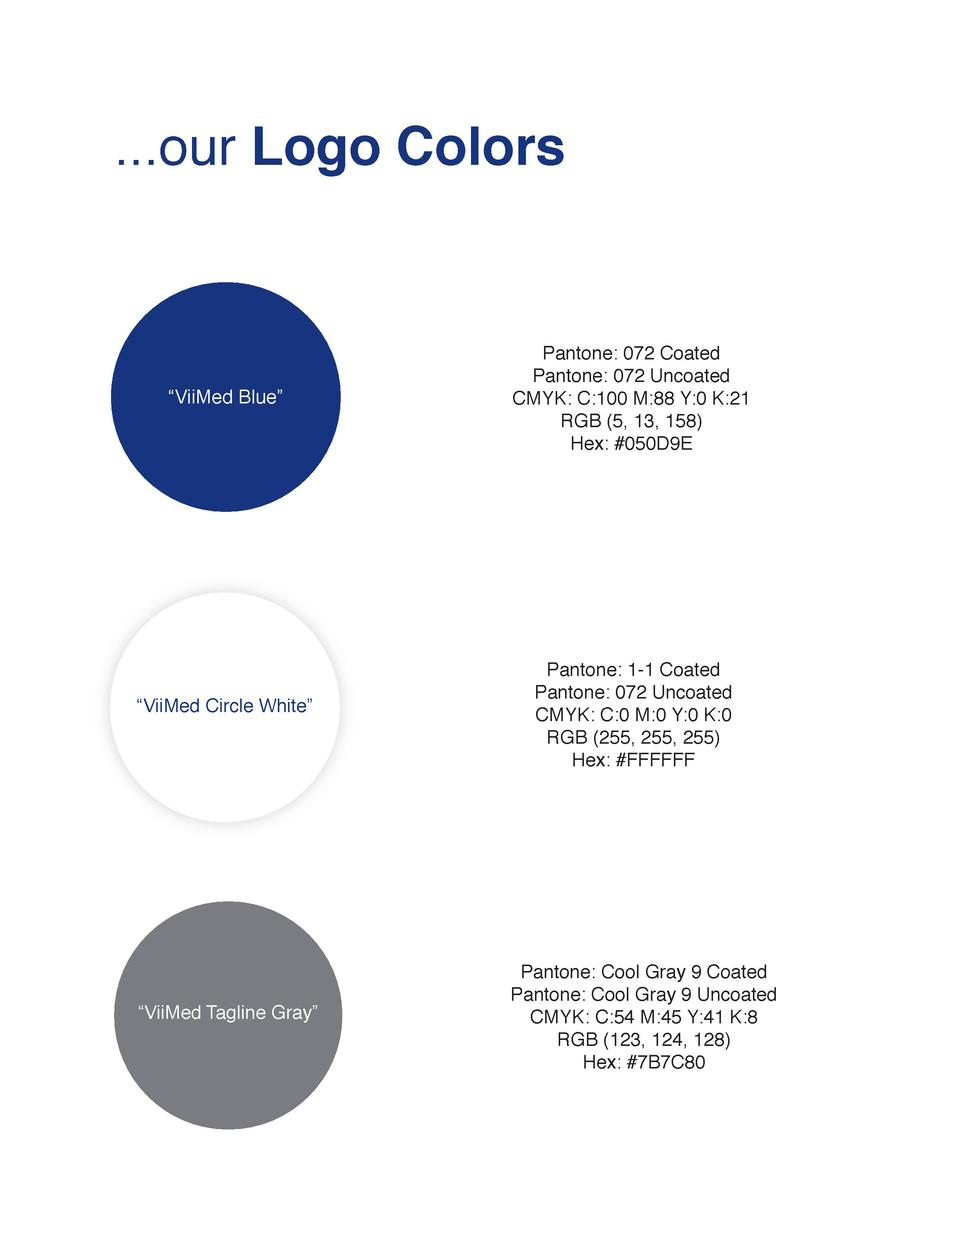 ...our Logo Colors     ViiMed Blue     Pantone  072 Coated Pantone  072 Uncoated CMYK  C 100 M 88 Y 0 K 21 RGB  5, 13, 158...